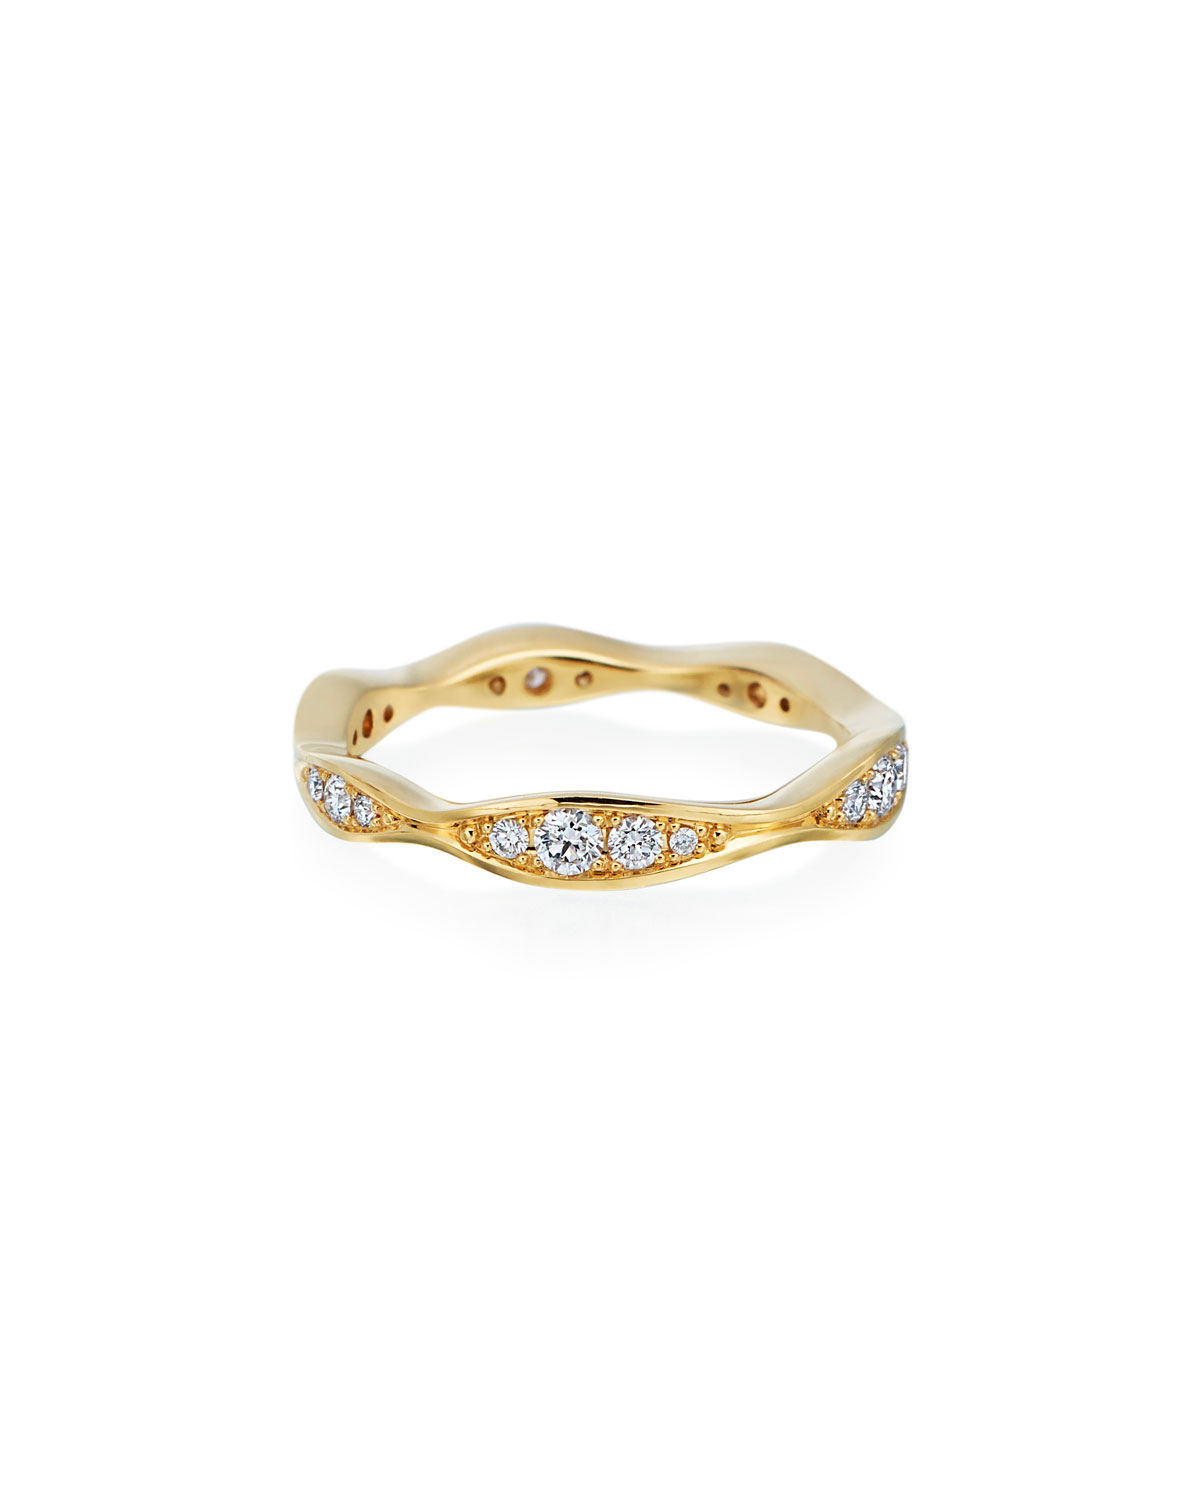 MARIA CANALE 18K Gold Diamond Narrow Wave Ring